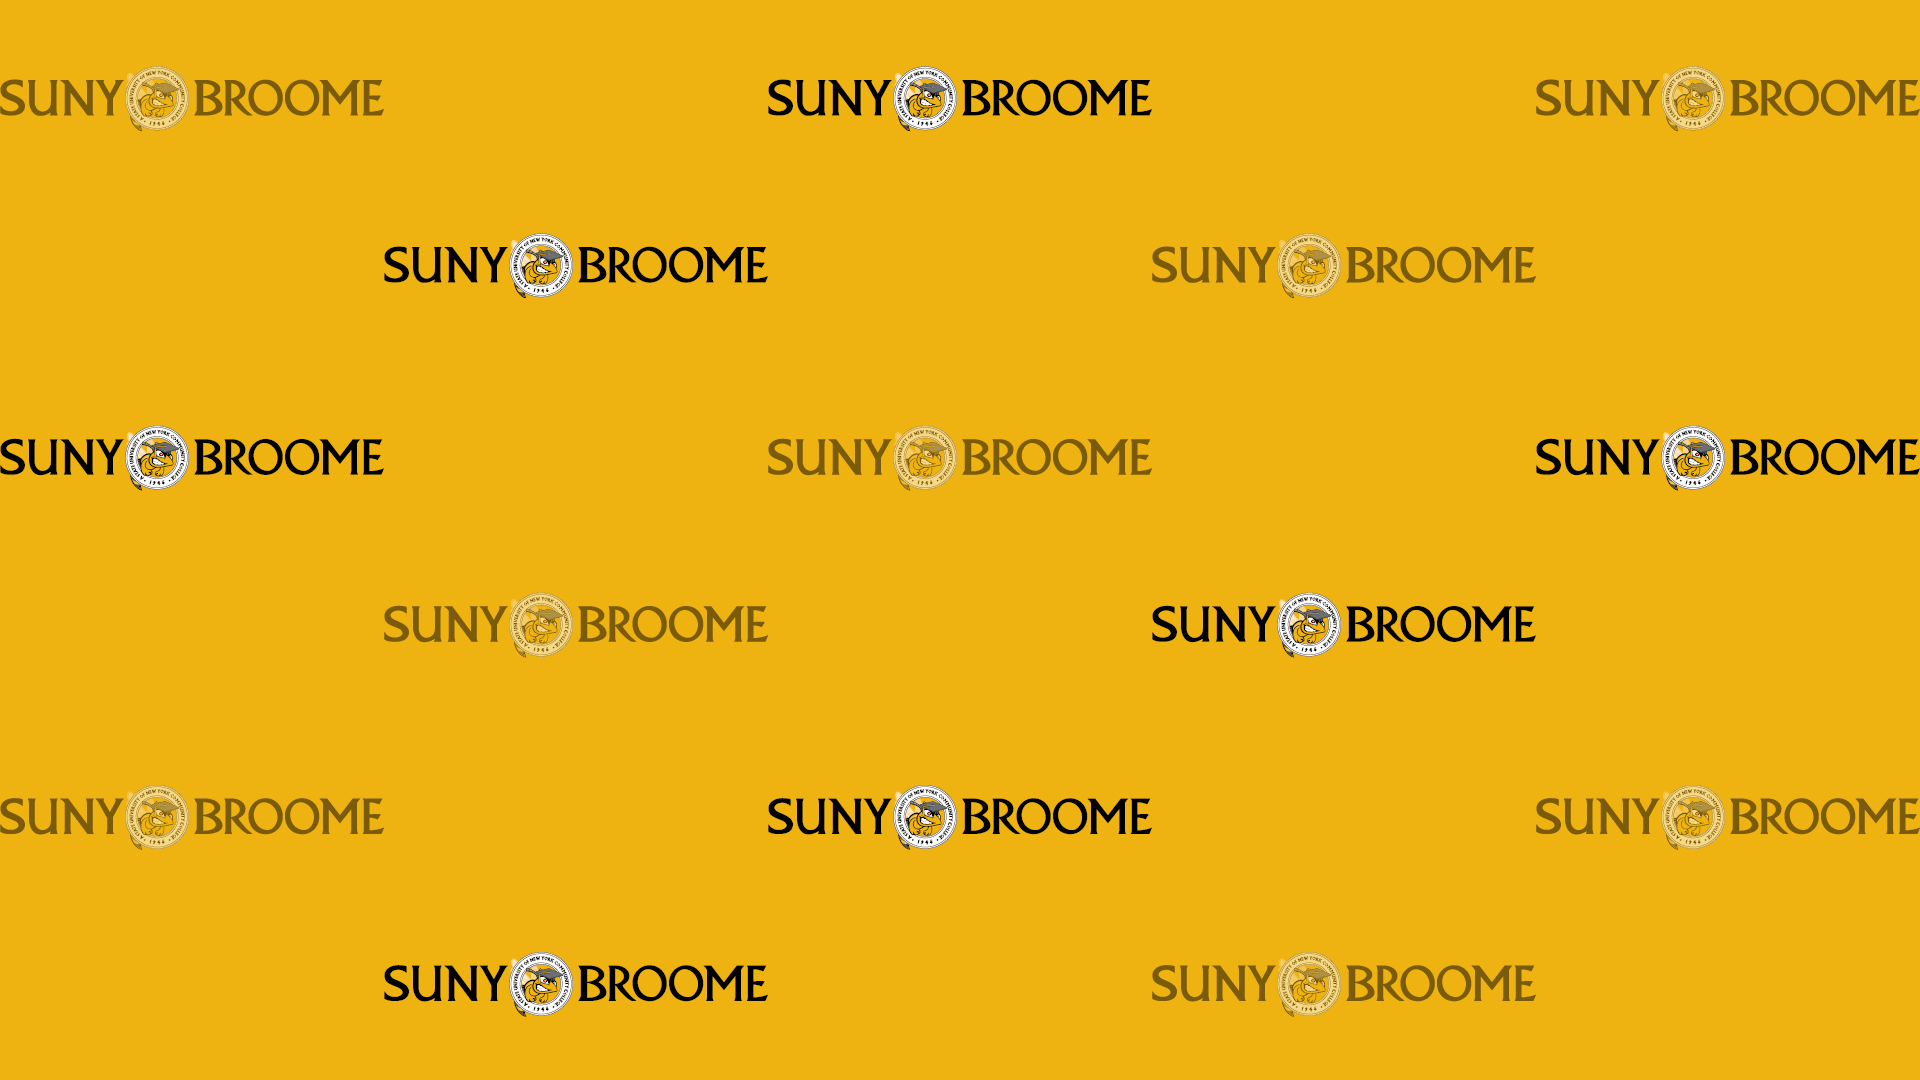 Download Zoom virtual background with black SUNY Broome logo tiled on yellow background (jpg)